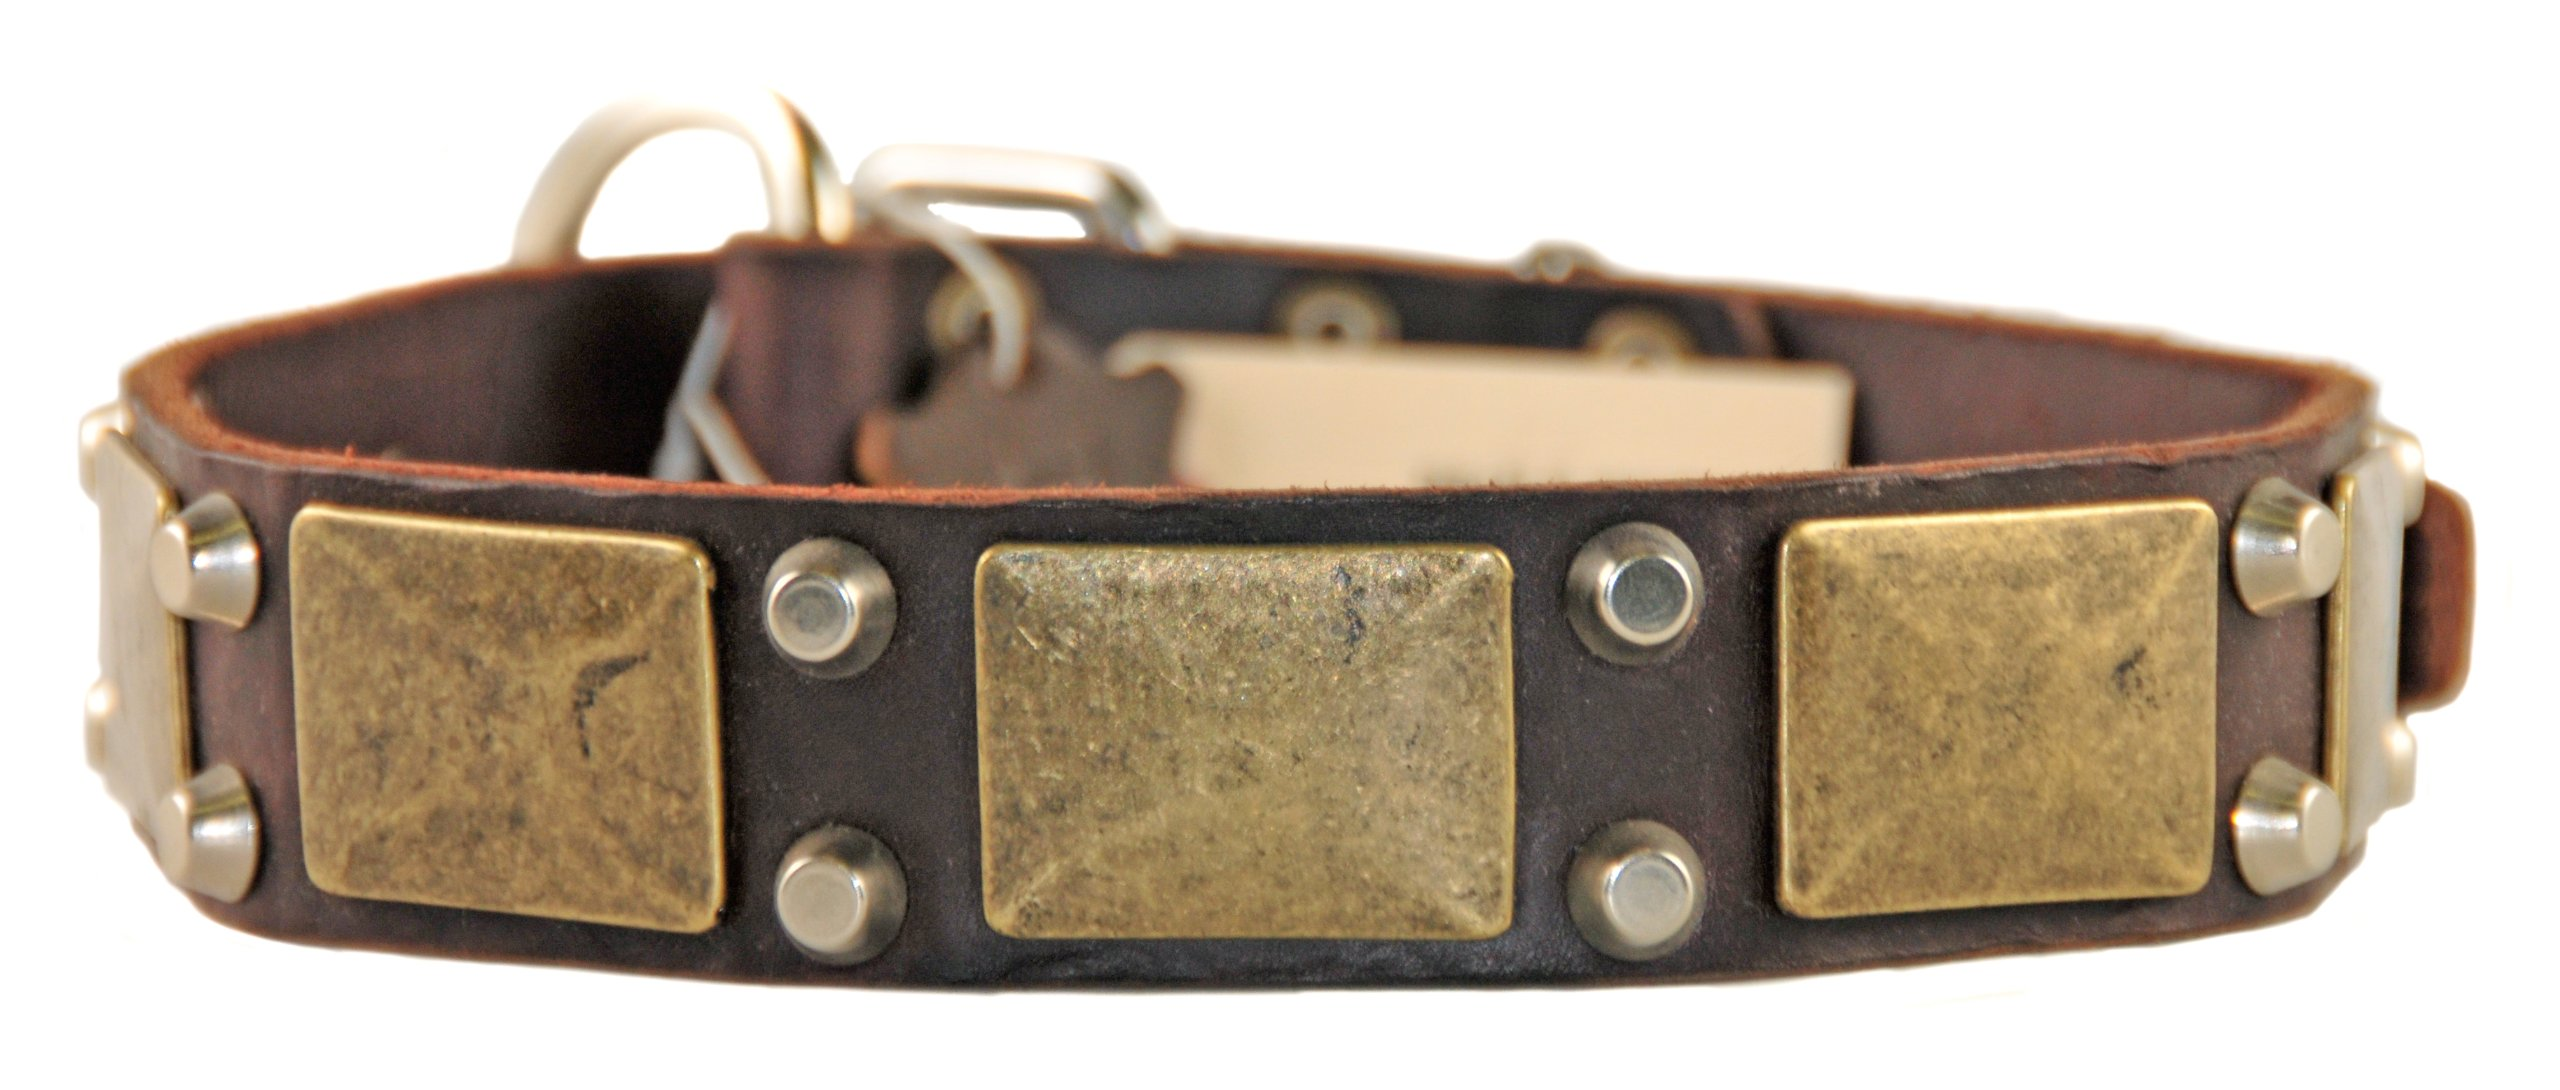 Dean and Tyler ''THE ANTIQUE'', Dog Collar with Antiqued Brass Plate and Nickel Stud - Brown - Size 30-Inch by 1-1/2-Inch - Fits Neck 28-Inch to 32-Inch